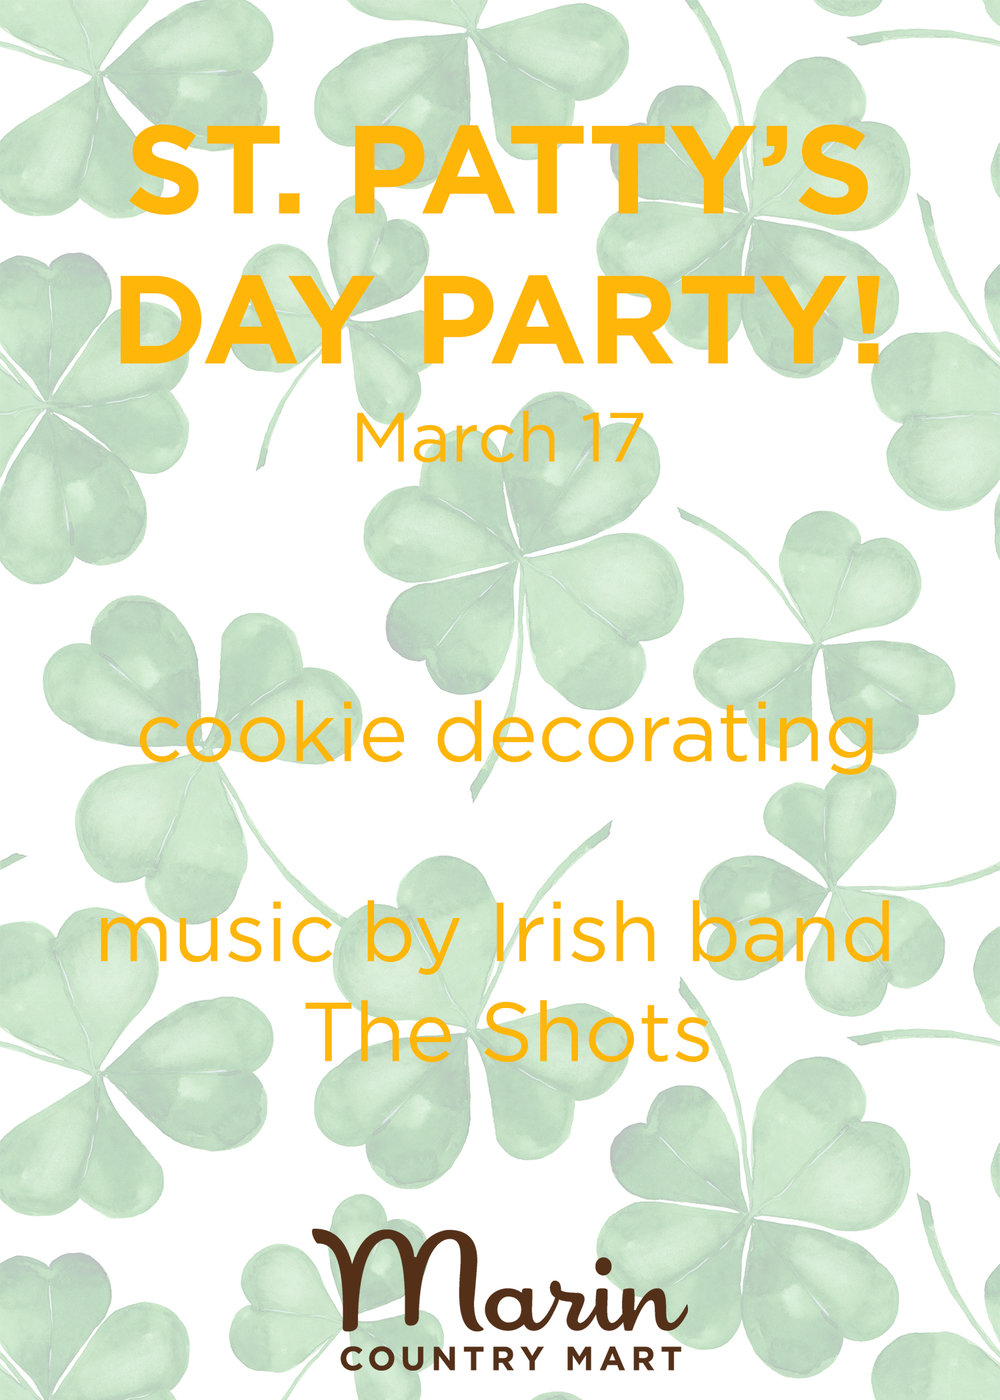 St. Patty's Dayat the Farmer's Market! - March 17, 12:30pm-2:30pmMeet us at the Marin Country Mart for live music plus all kinds of fun and games for the whole family to enjoy!